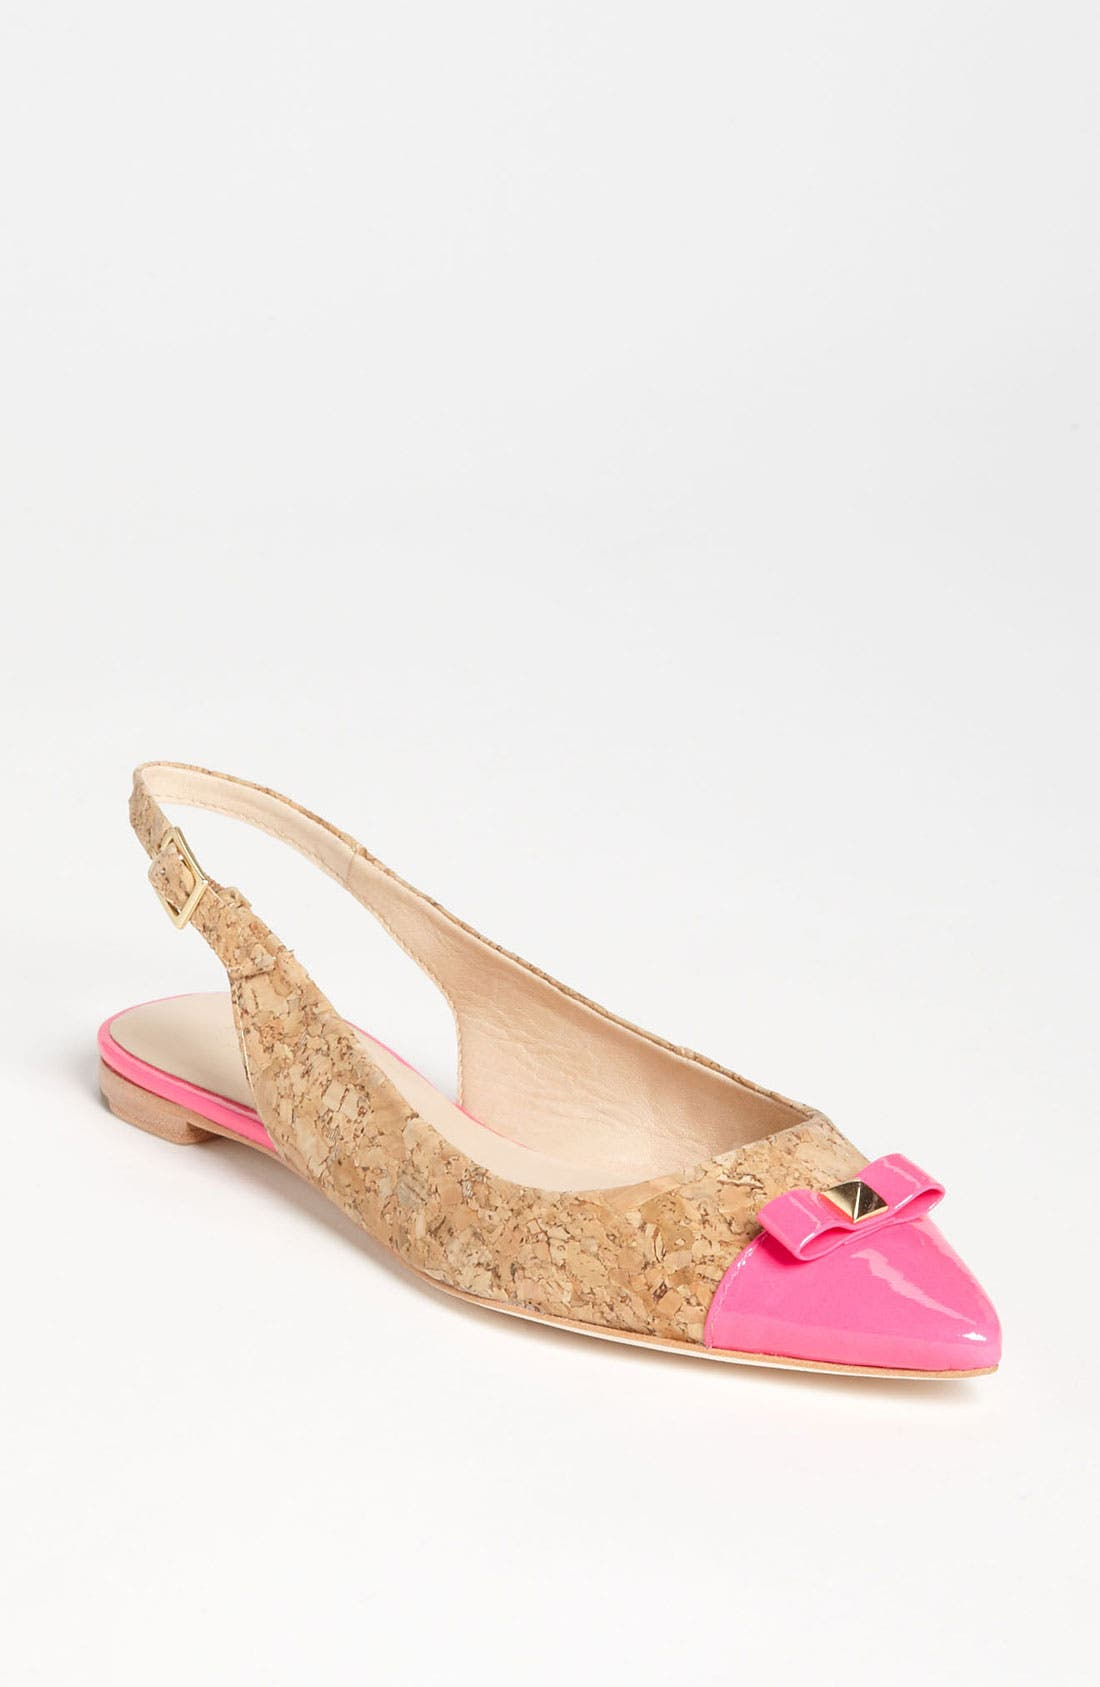 Alternate Image 1 Selected - kate spade new york 'ginny' flat